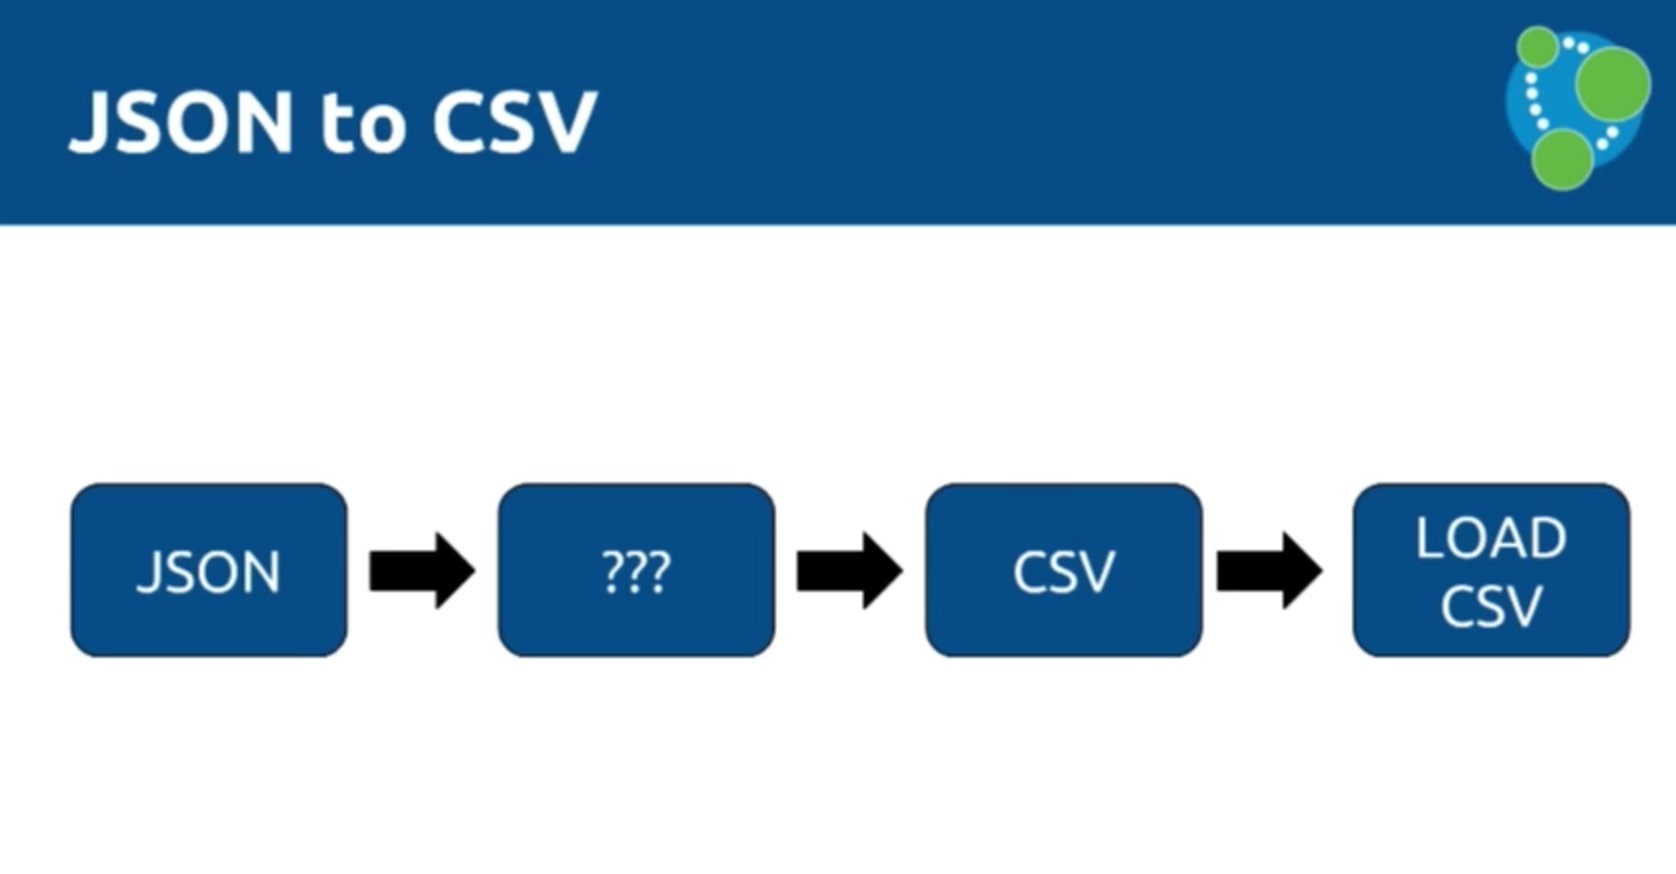 Data import from JSON to CSV and then LOAD CSV